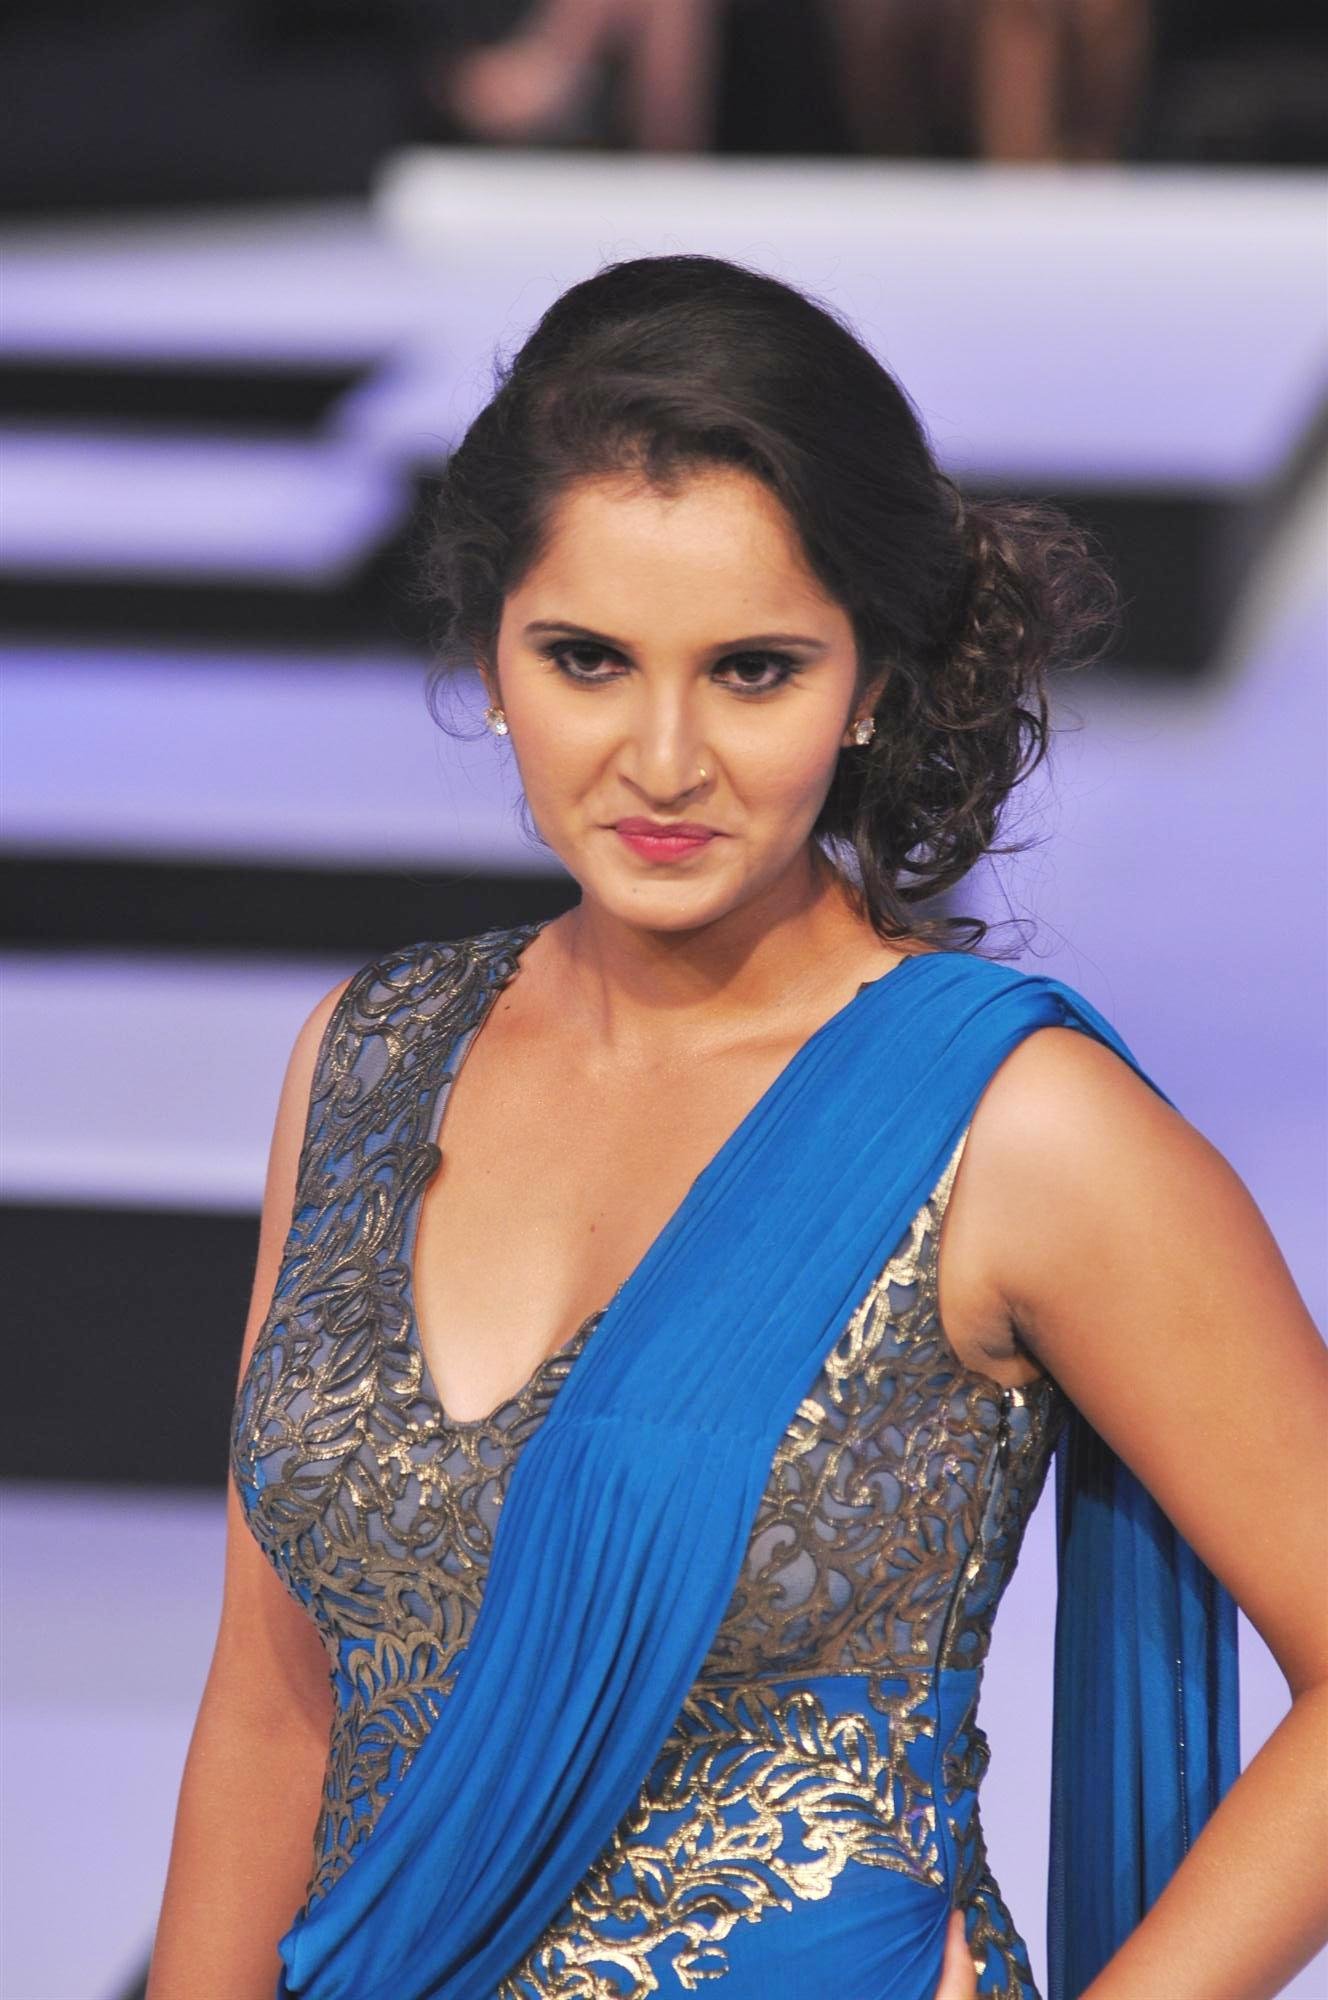 Lawn-Tennis-Player-Sania-Mirza-is-a-world-famous-Indian-tennis-player-in-the-world-This-article-is-wallpaper-wp5009714